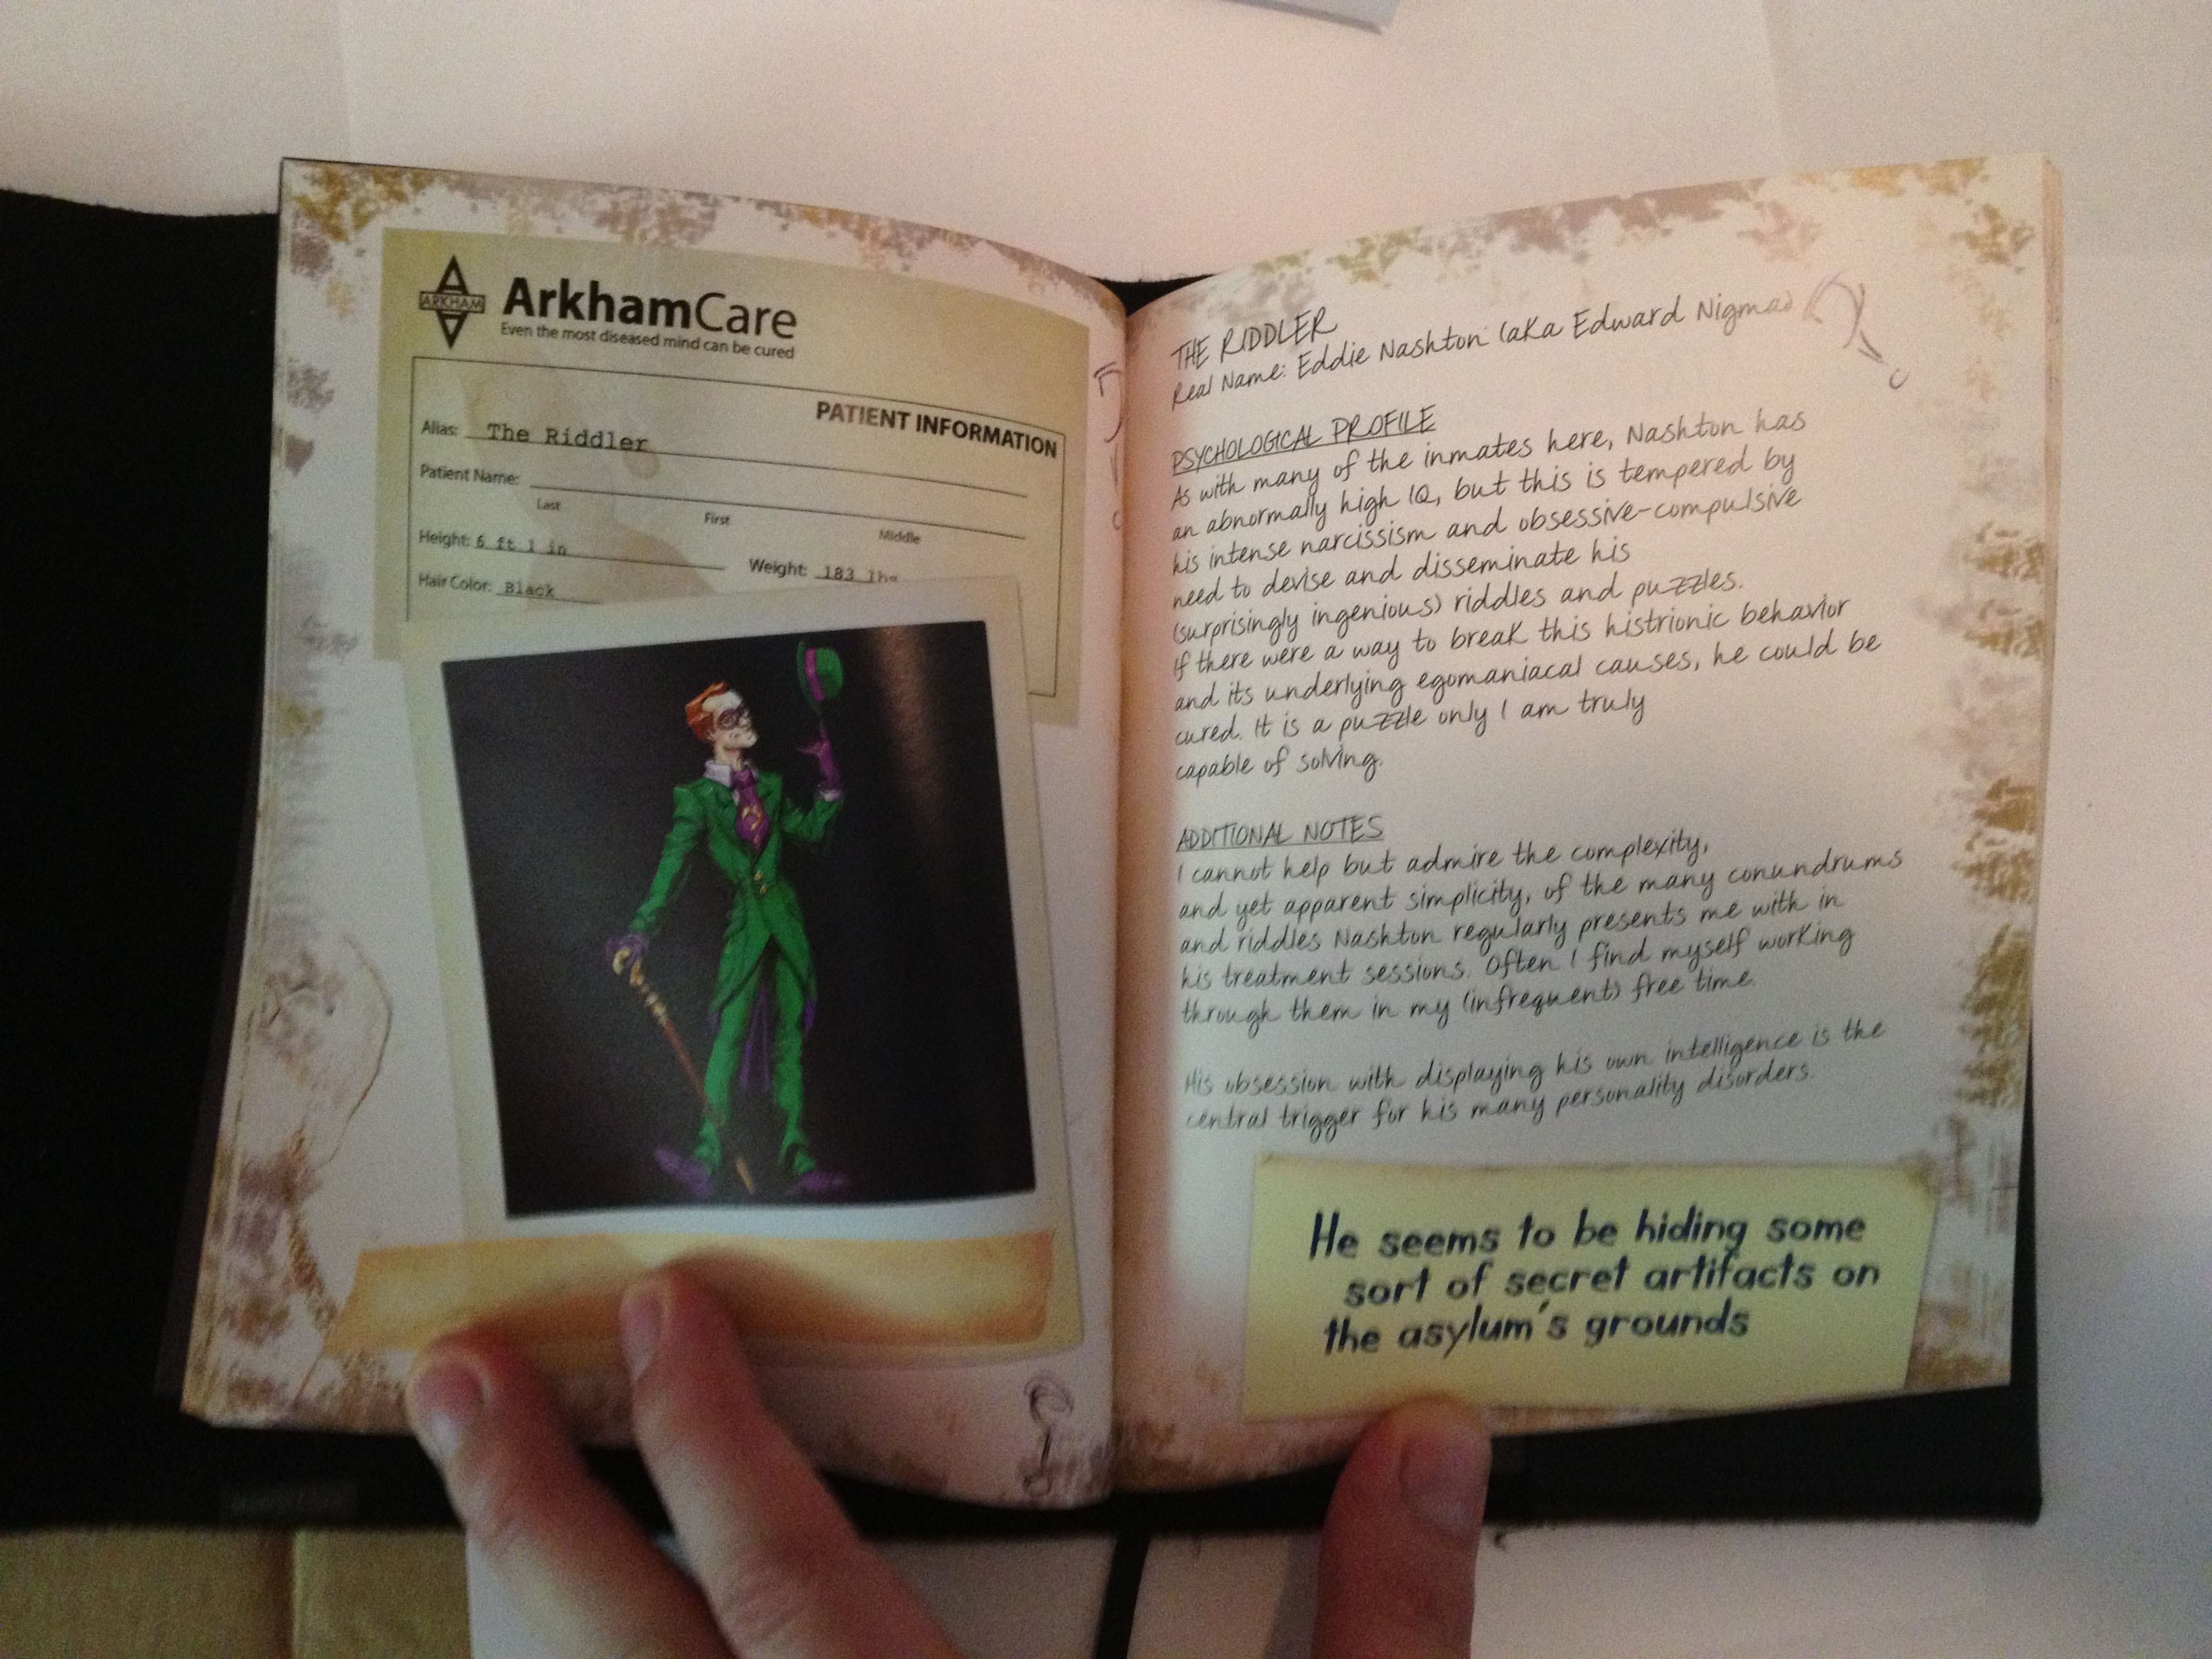 Color image of a tabletop with a white man's hand a book open to two pages describing the Riddler, with a color Polaroid image of a green suit-clad Riddler, the image apparently taped in with masking tape; a yellow sticky note that reads, He seems to be hiding some sort of secret artifacts on the asylum's grounds; and smudged page edges, perhaps indicating mold or wet damage.